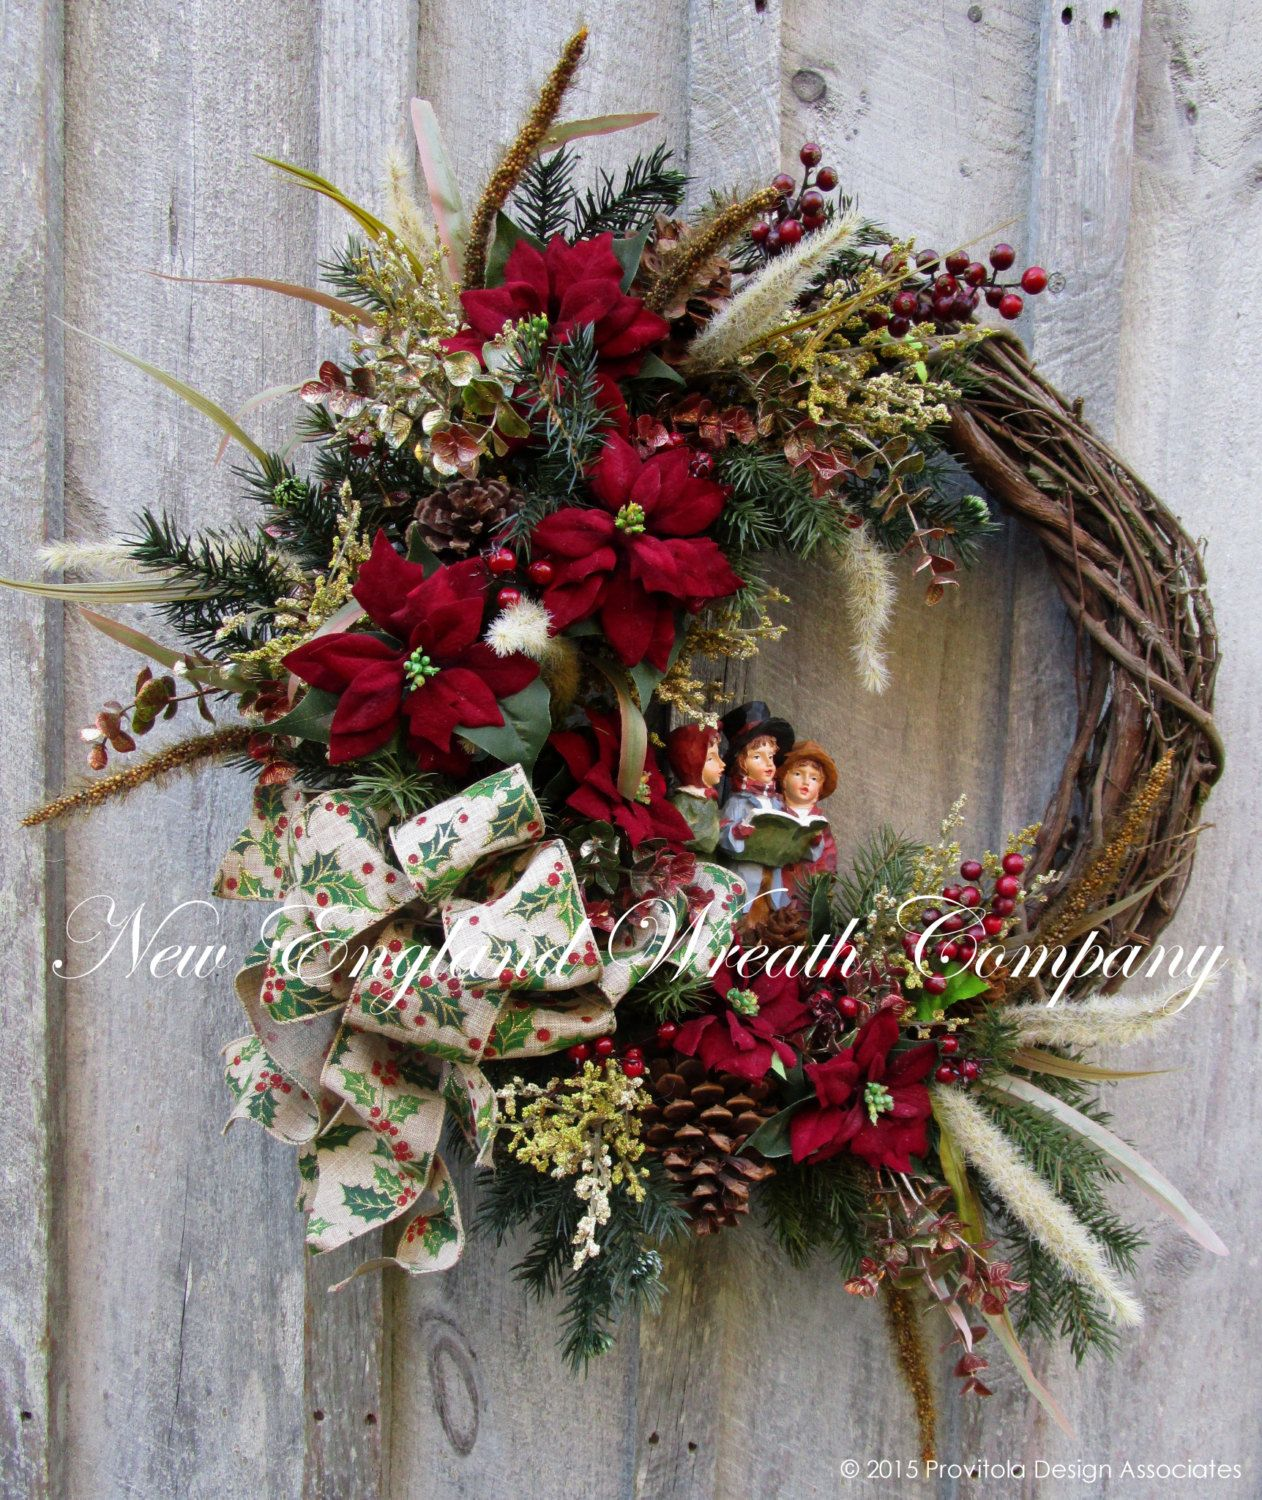 Christmas Decorations In Victorian England: Dickens' Carolers Christmas Wreath ~A New England Wreath